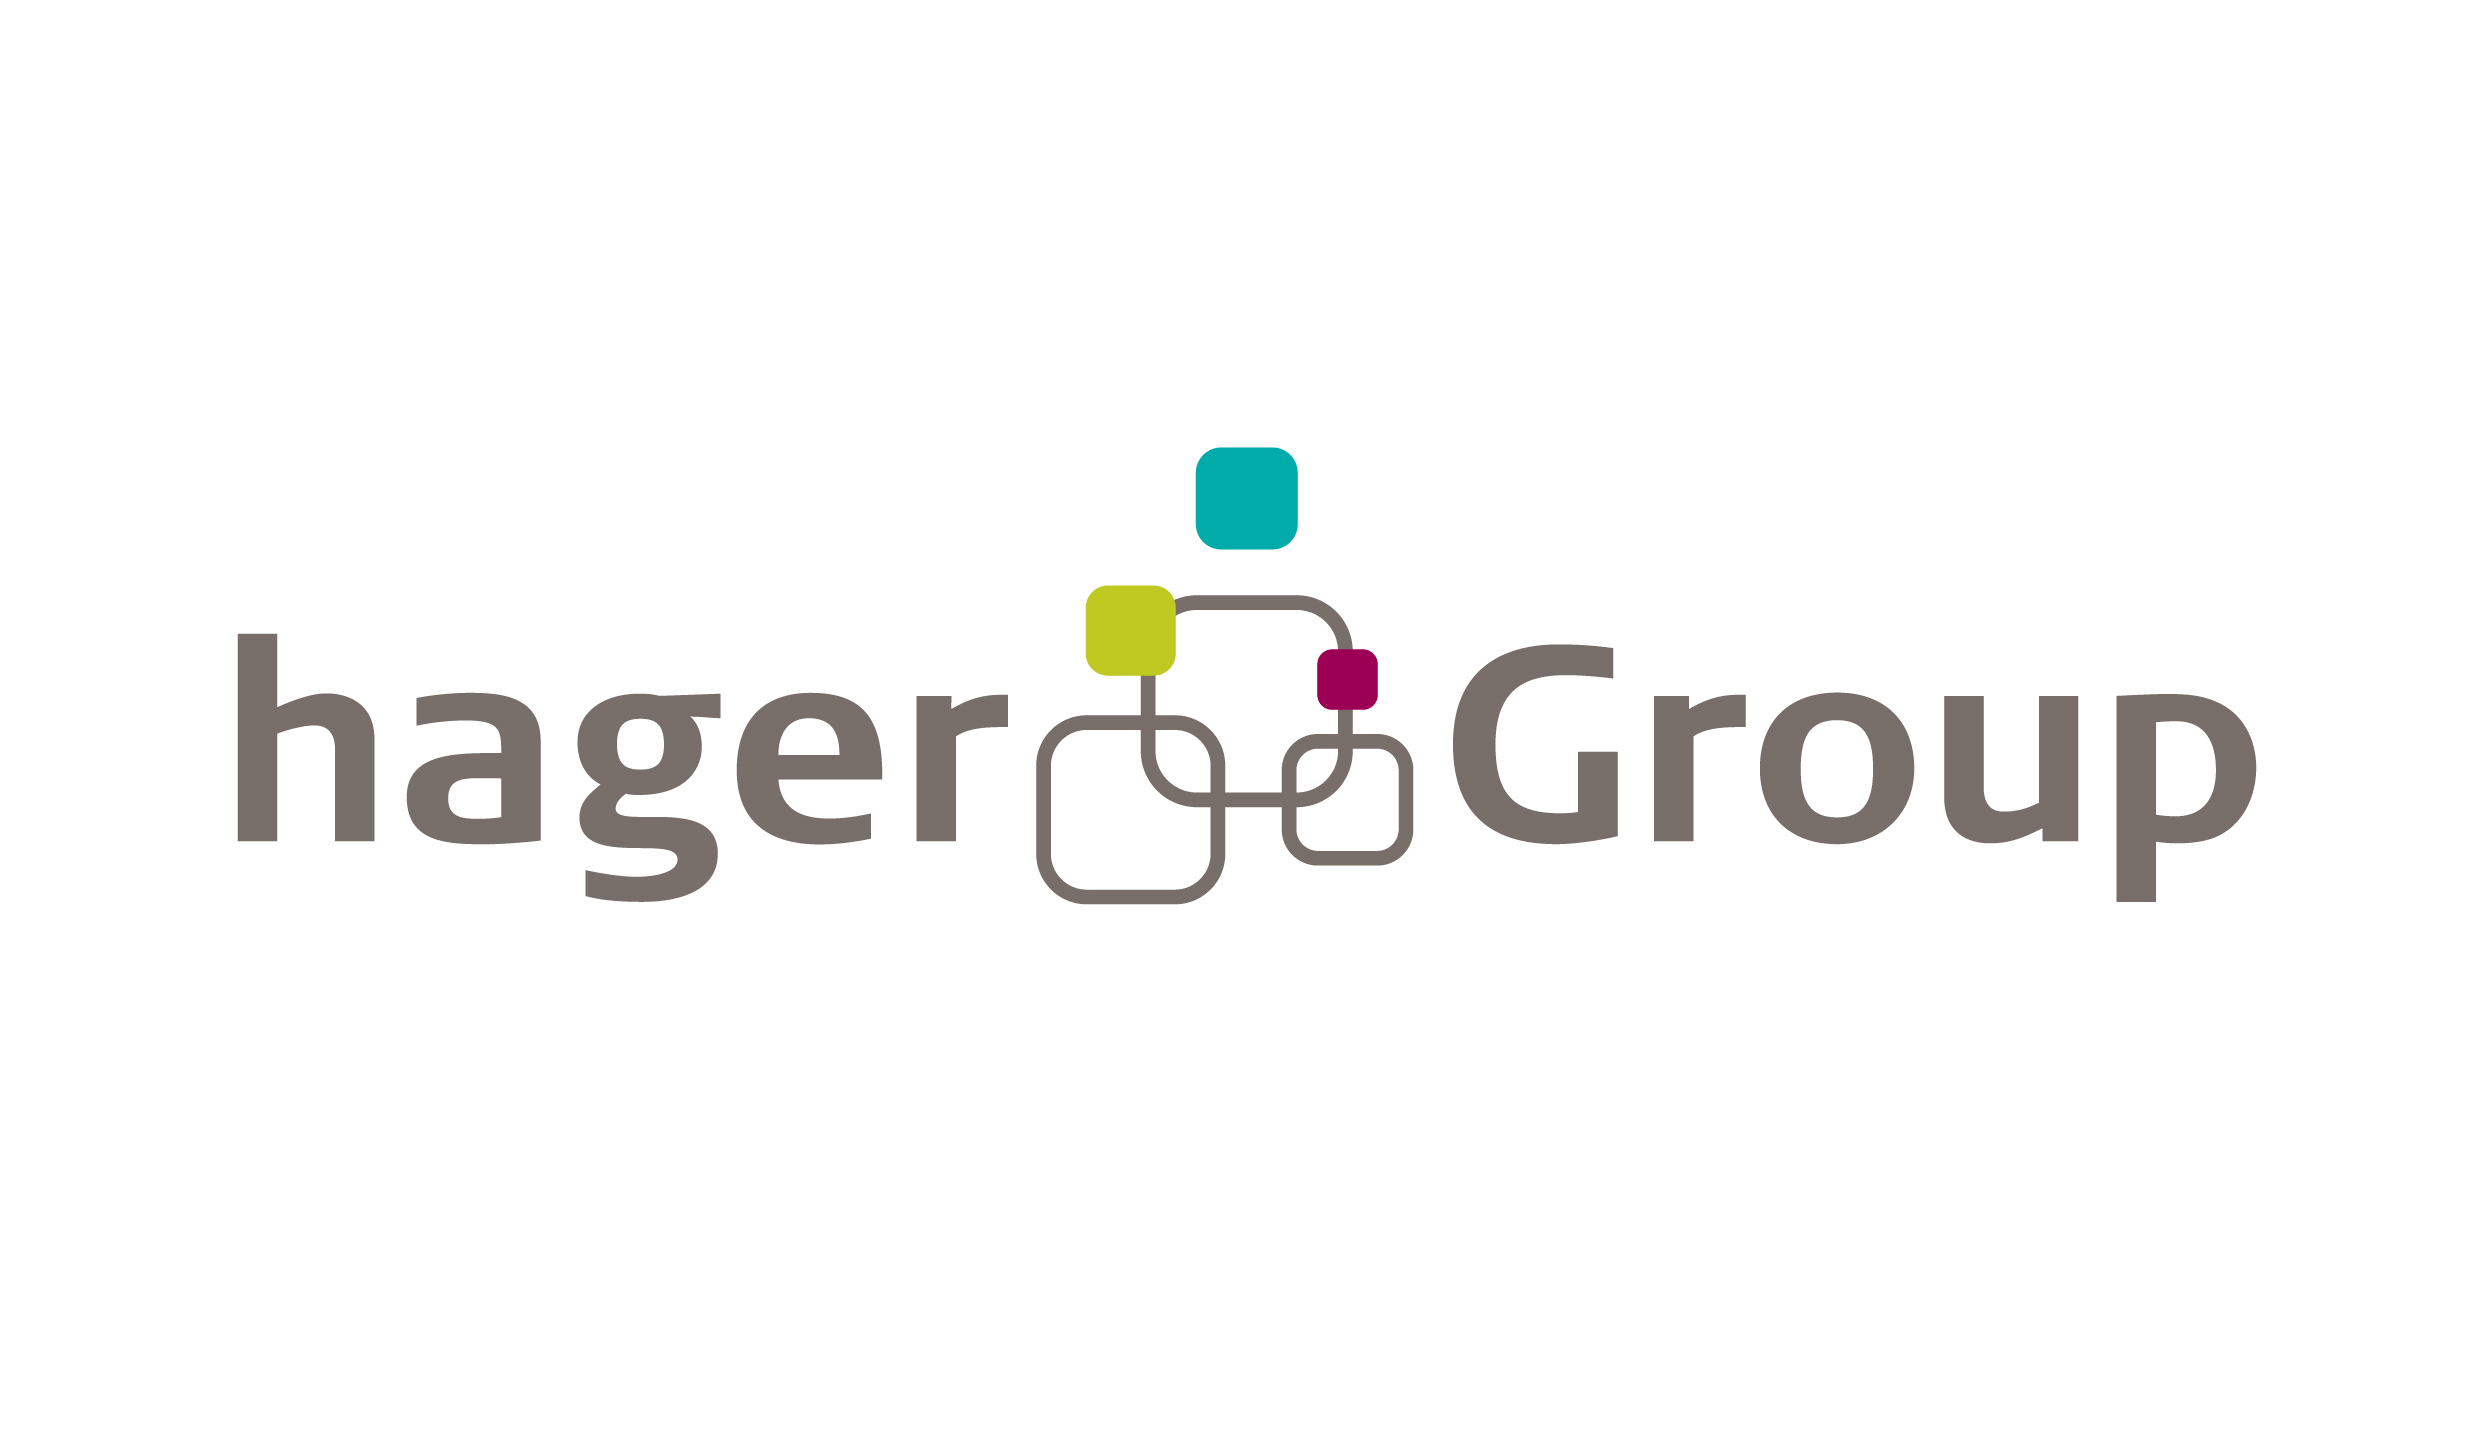 File:Hager Group logo.jpg - Wikimedia Commons